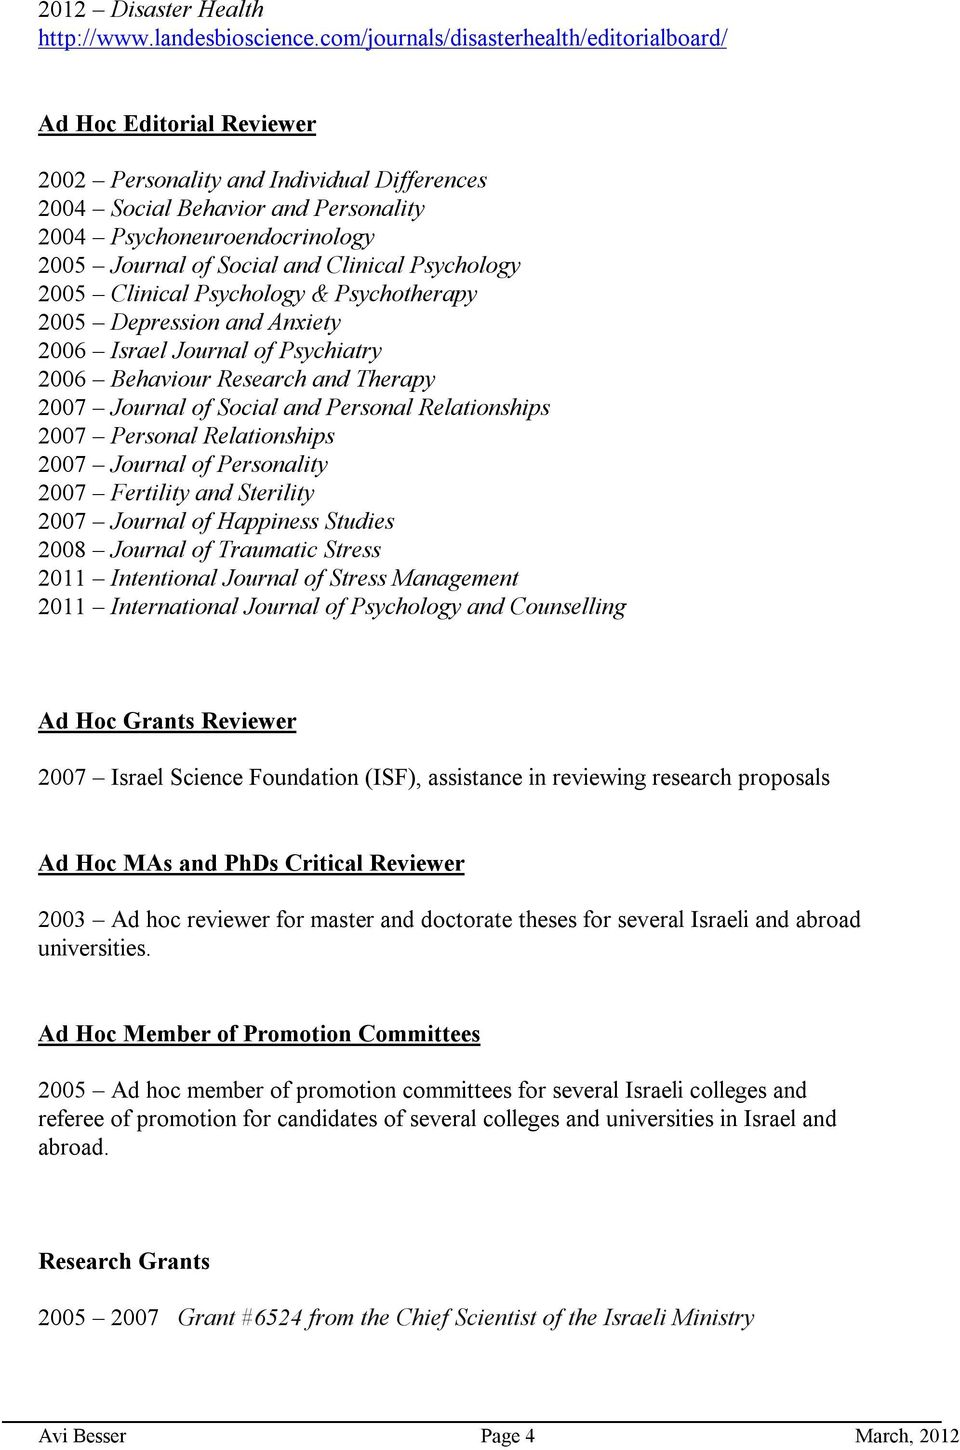 Social And Clinical Psychology 2005 Clinical Psychology U0026 Psychotherapy  2005 Depression And Anxiety 2006 Israel Journal